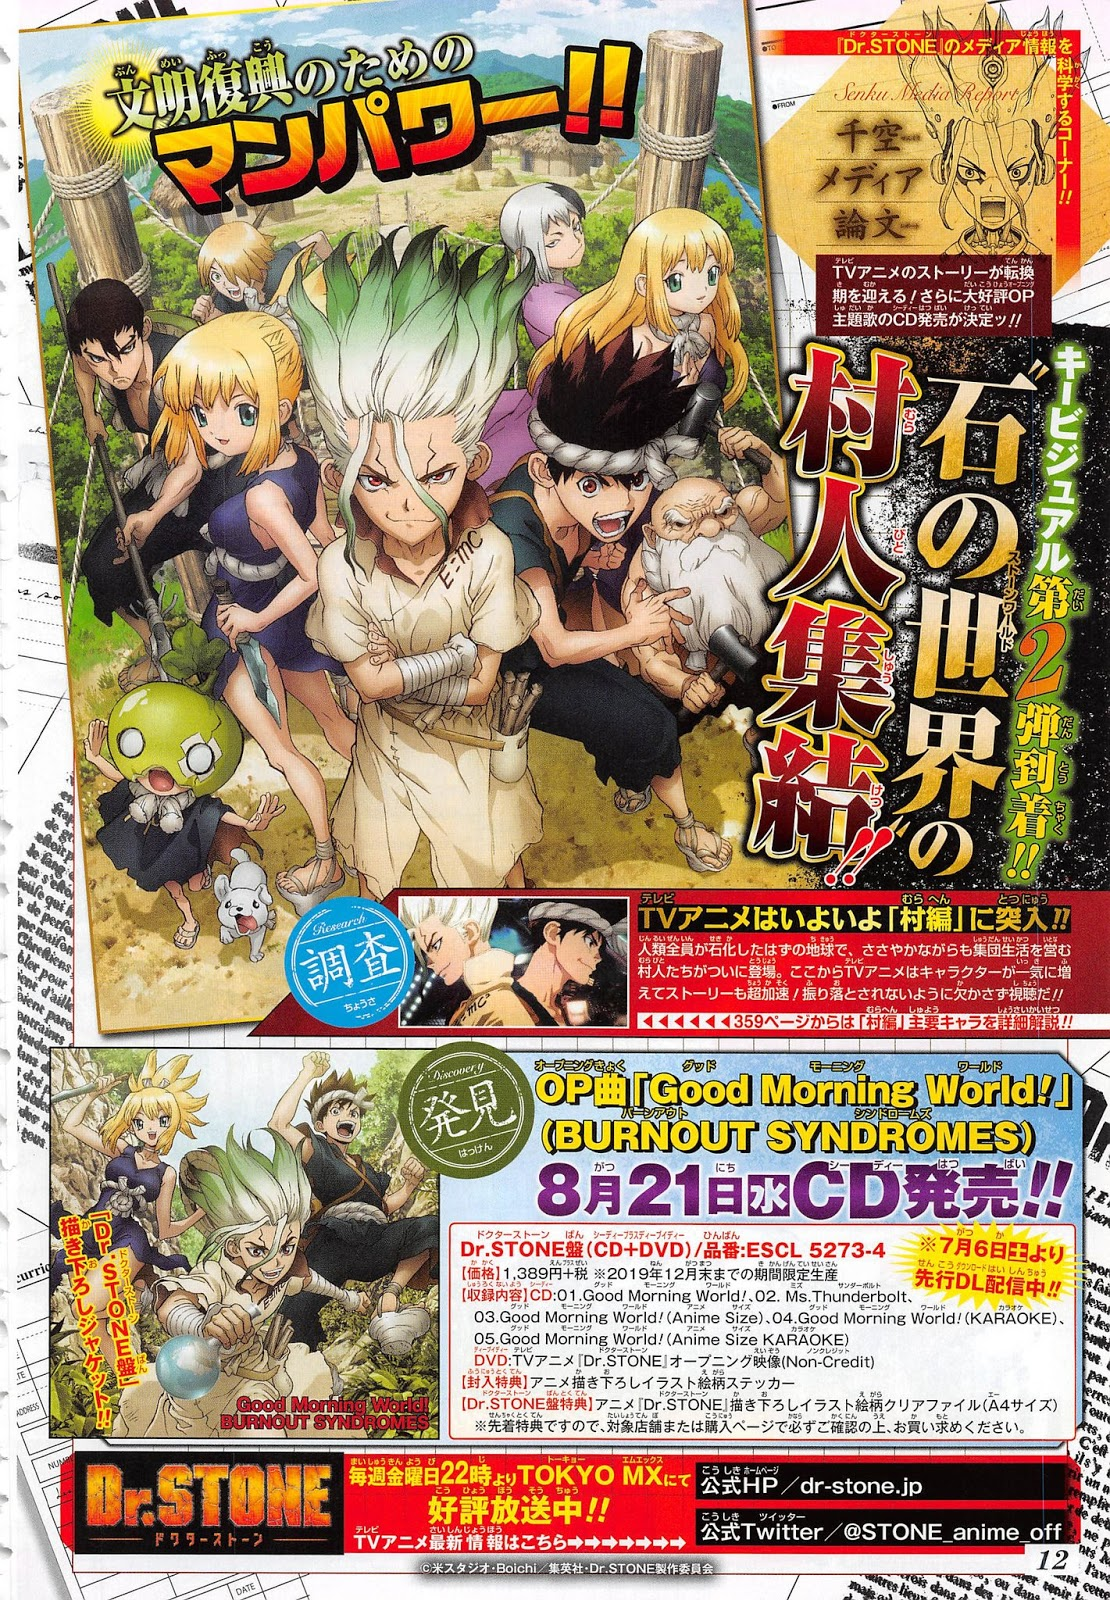 Dr.Stone anime new key visual